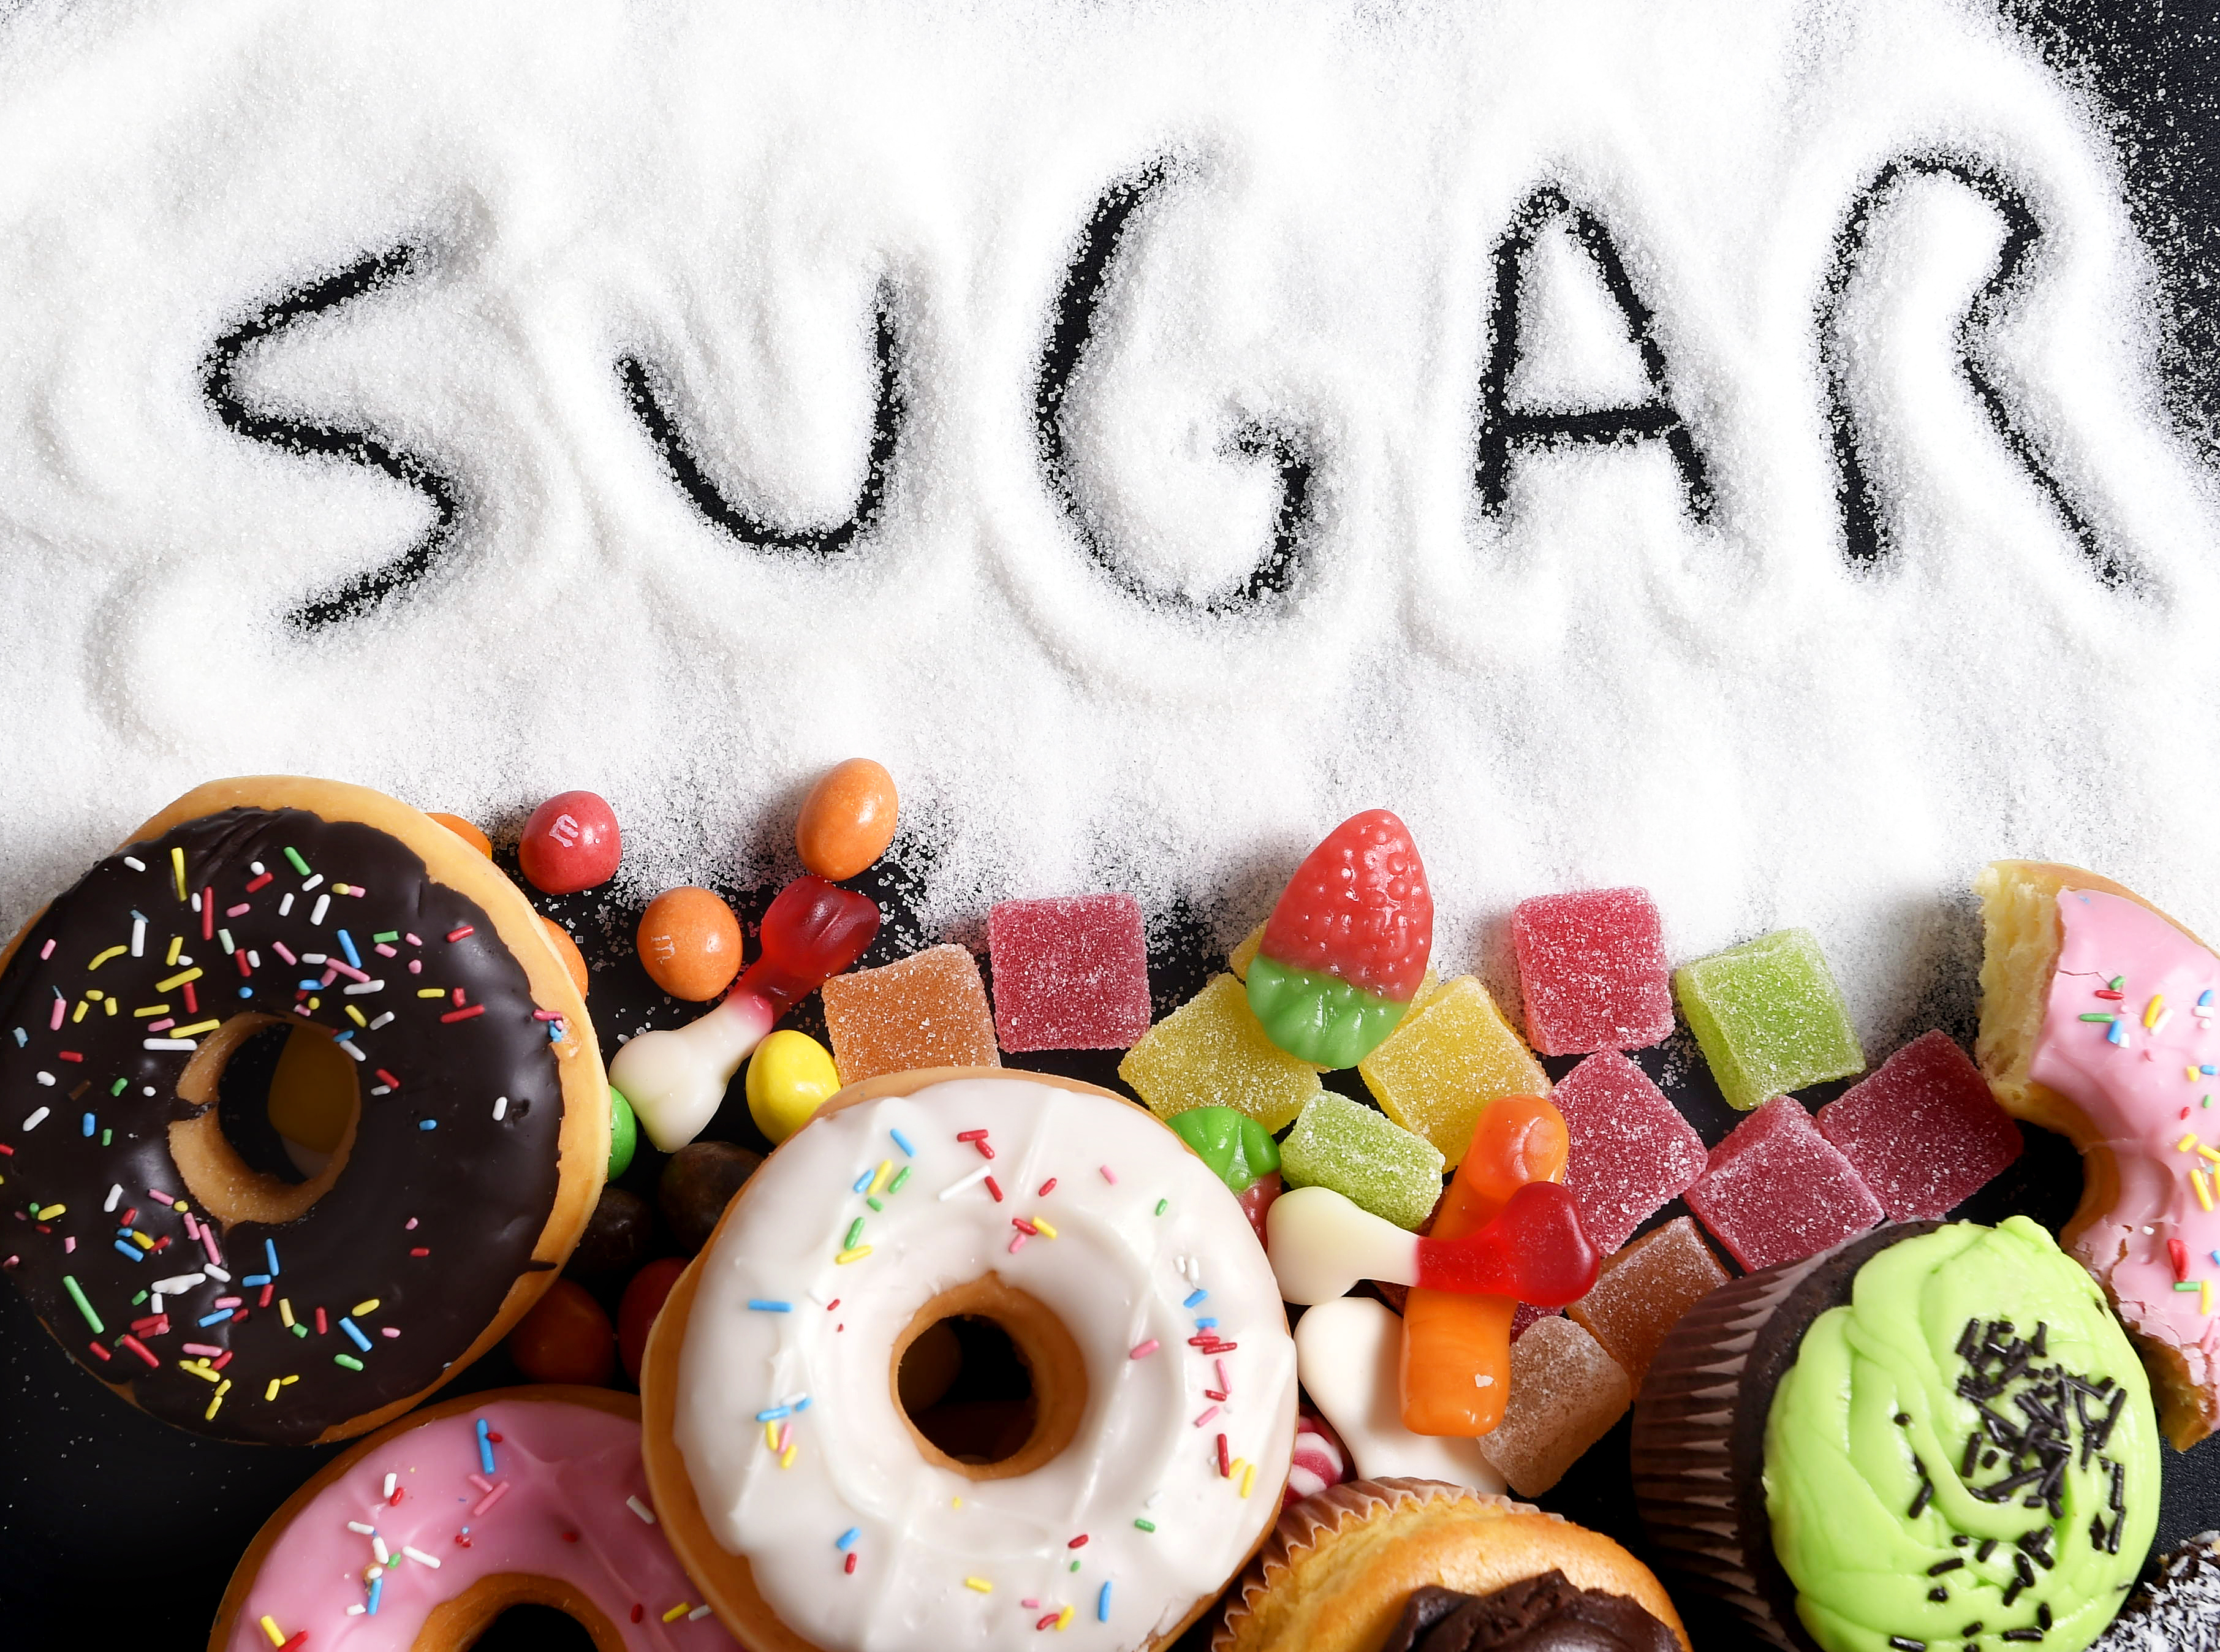 Sugar addiction photo